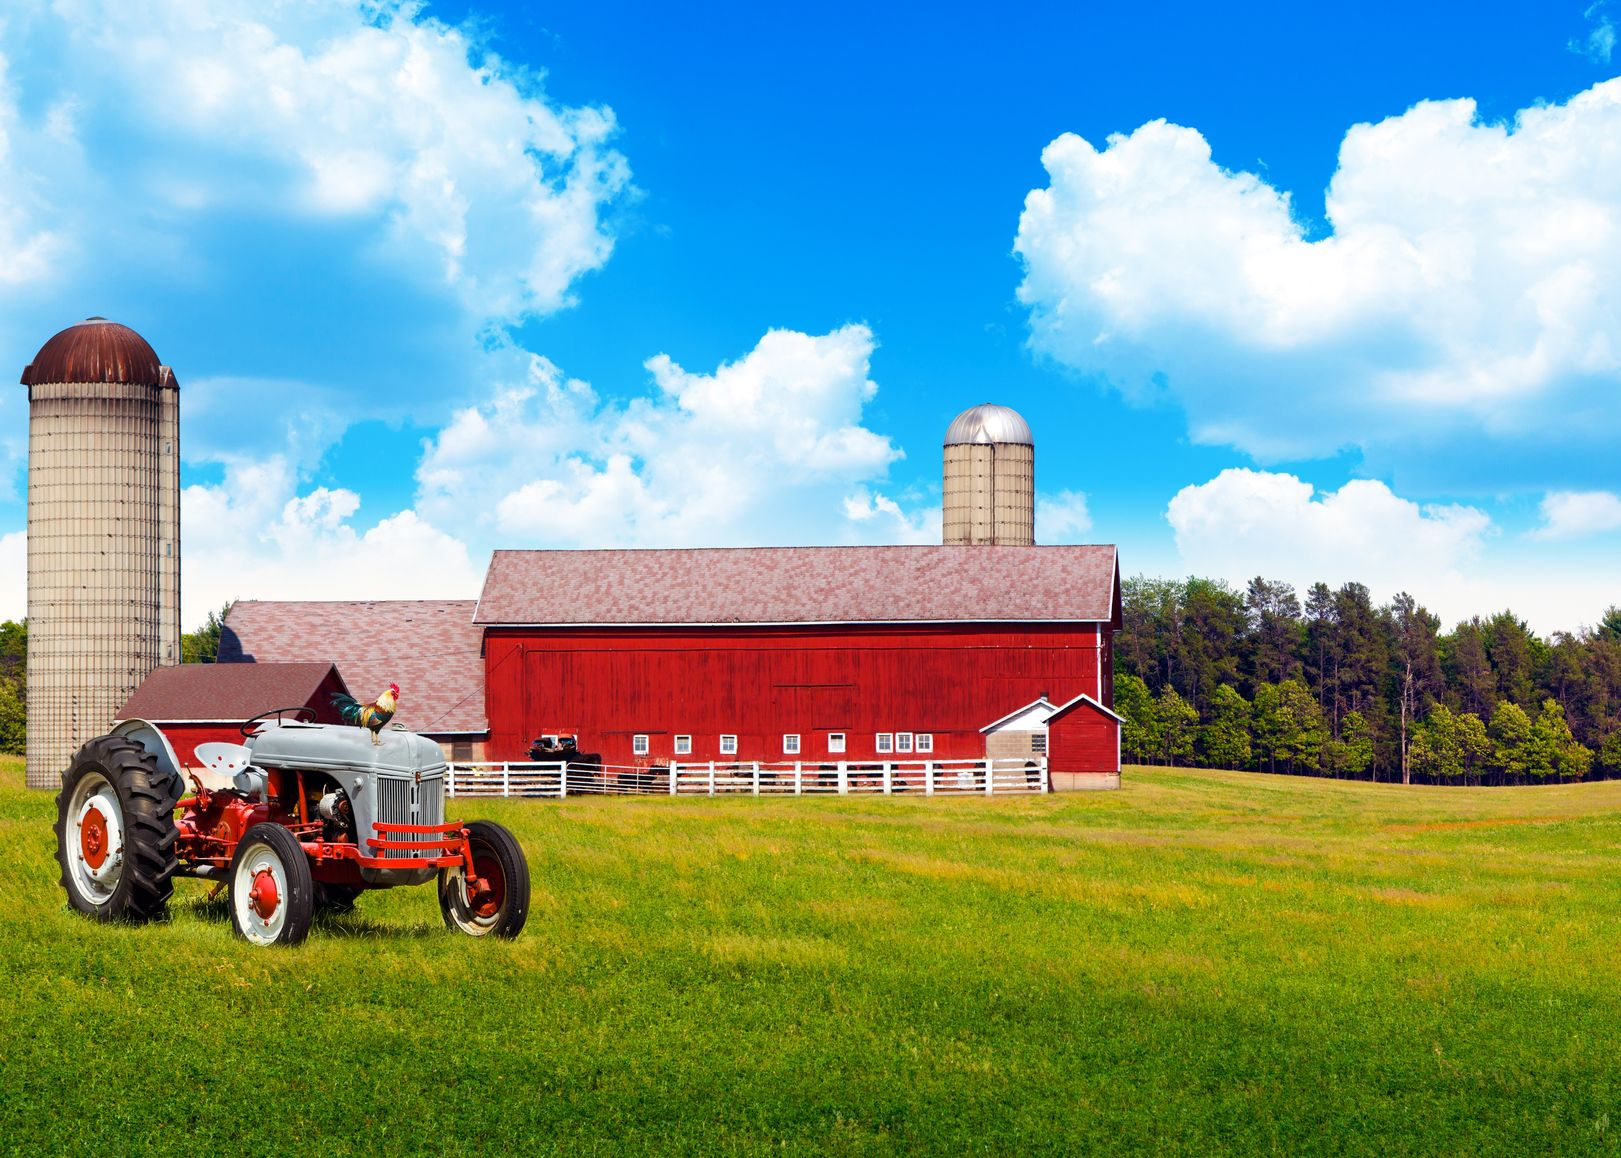 Indiana & Indiana County, PA. Farm & Ranch Insurance